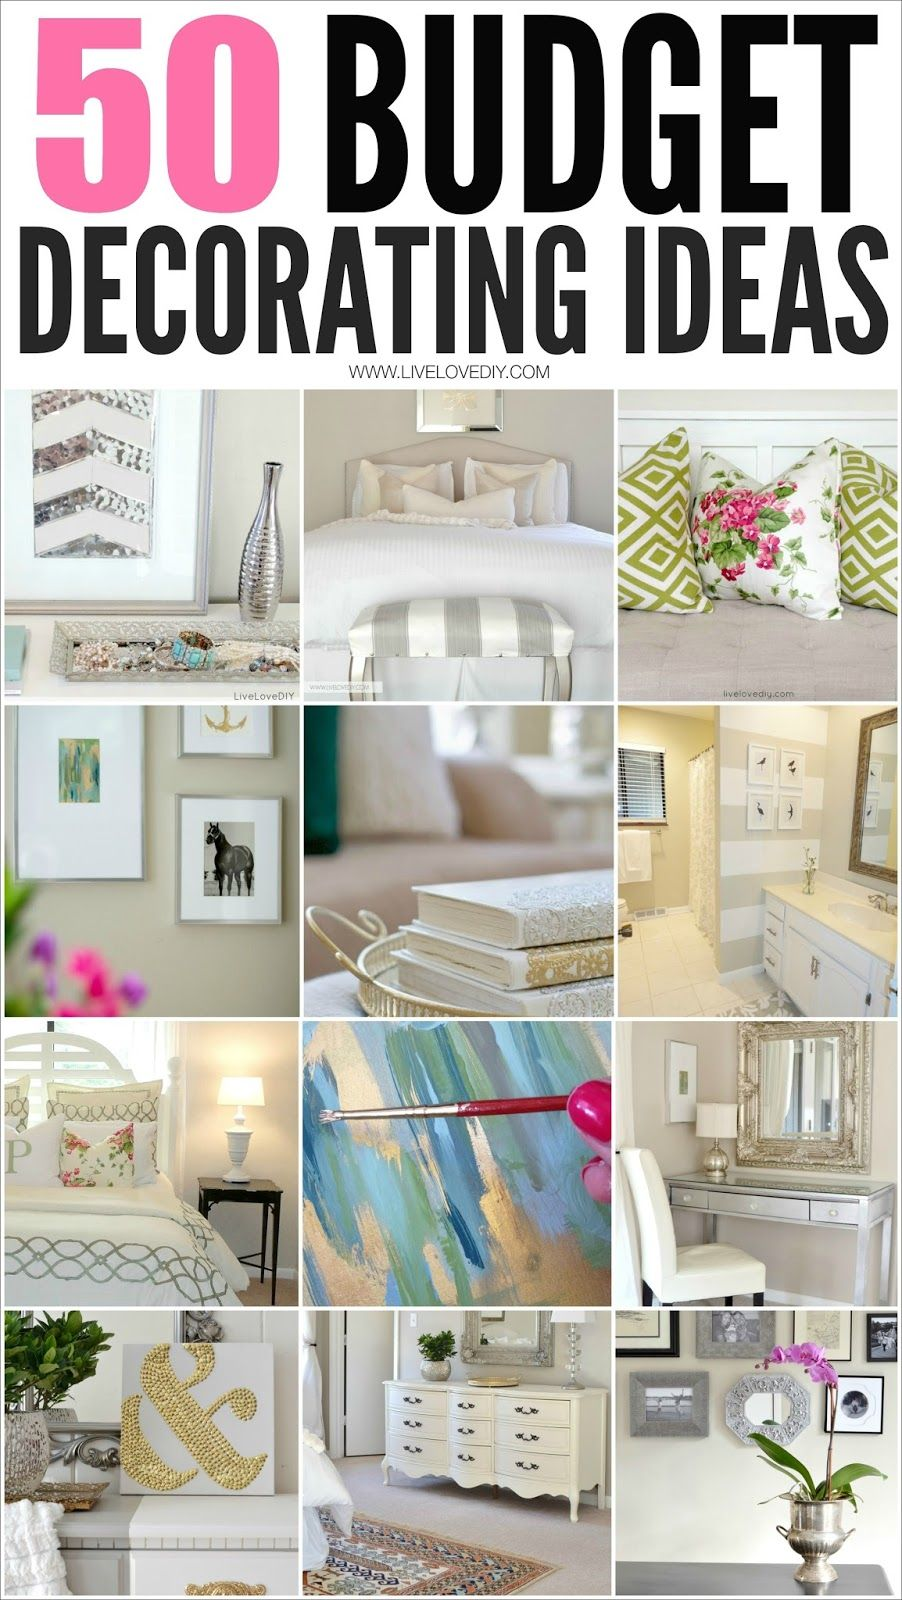 Inexpensive Bedroom Decorating Ideas on inexpensive wall decor ideas, inexpensive home ideas, inexpensive furniture ideas, cheap bedroom ideas, inexpensive interior door ideas, inexpensive bedroom furniture, inexpensive guest bedroom ideas, bedroom paint ideas, inexpensive bedroom organization, inexpensive bedroom bedding, inexpensive master bedroom ideas, inexpensive girls bedroom ideas, inexpensive kitchen ideas, inexpensive window covering ideas, hipster bedroom ideas, inexpensive living room ideas, inexpensive bedroom flooring ideas, inexpensive bedroom storage ideas, inexpensive lighting ideas, affordable bedroom ideas,